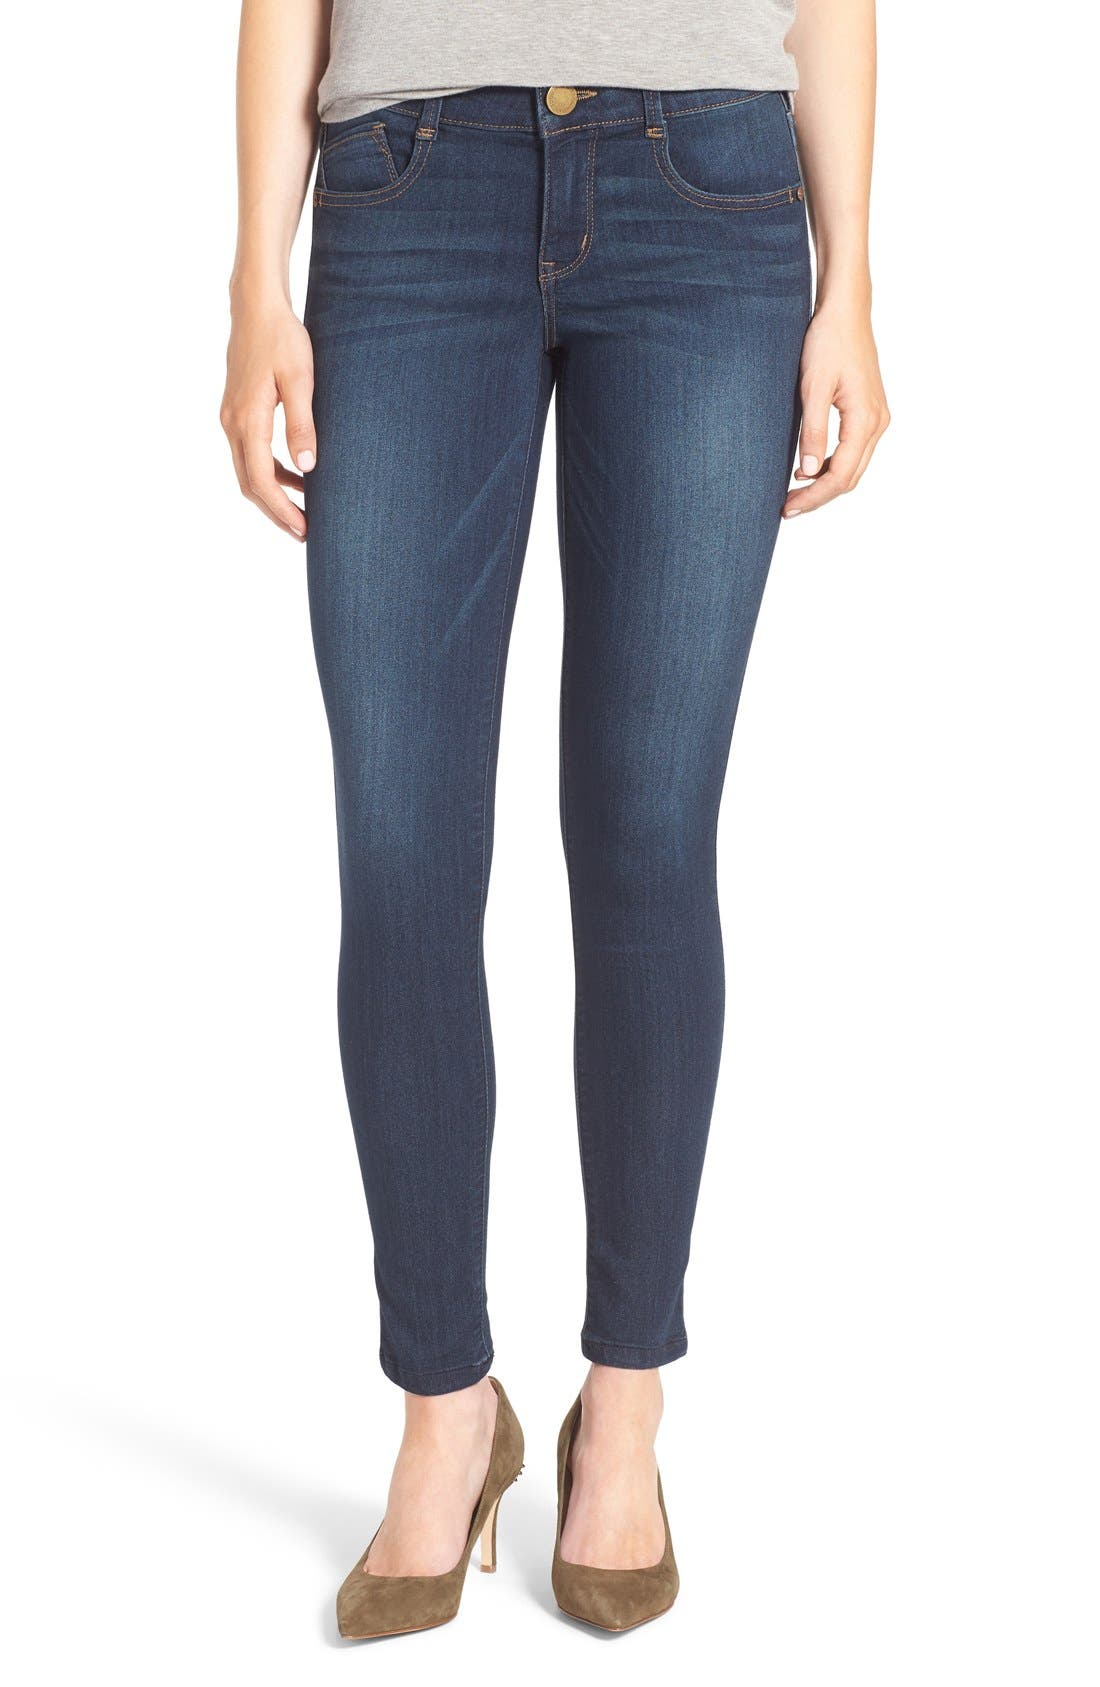 Main Image - Wit & Wisdom 'Ab-solution' Stretch Skinny Jeans (Nordstrom Exclusive)